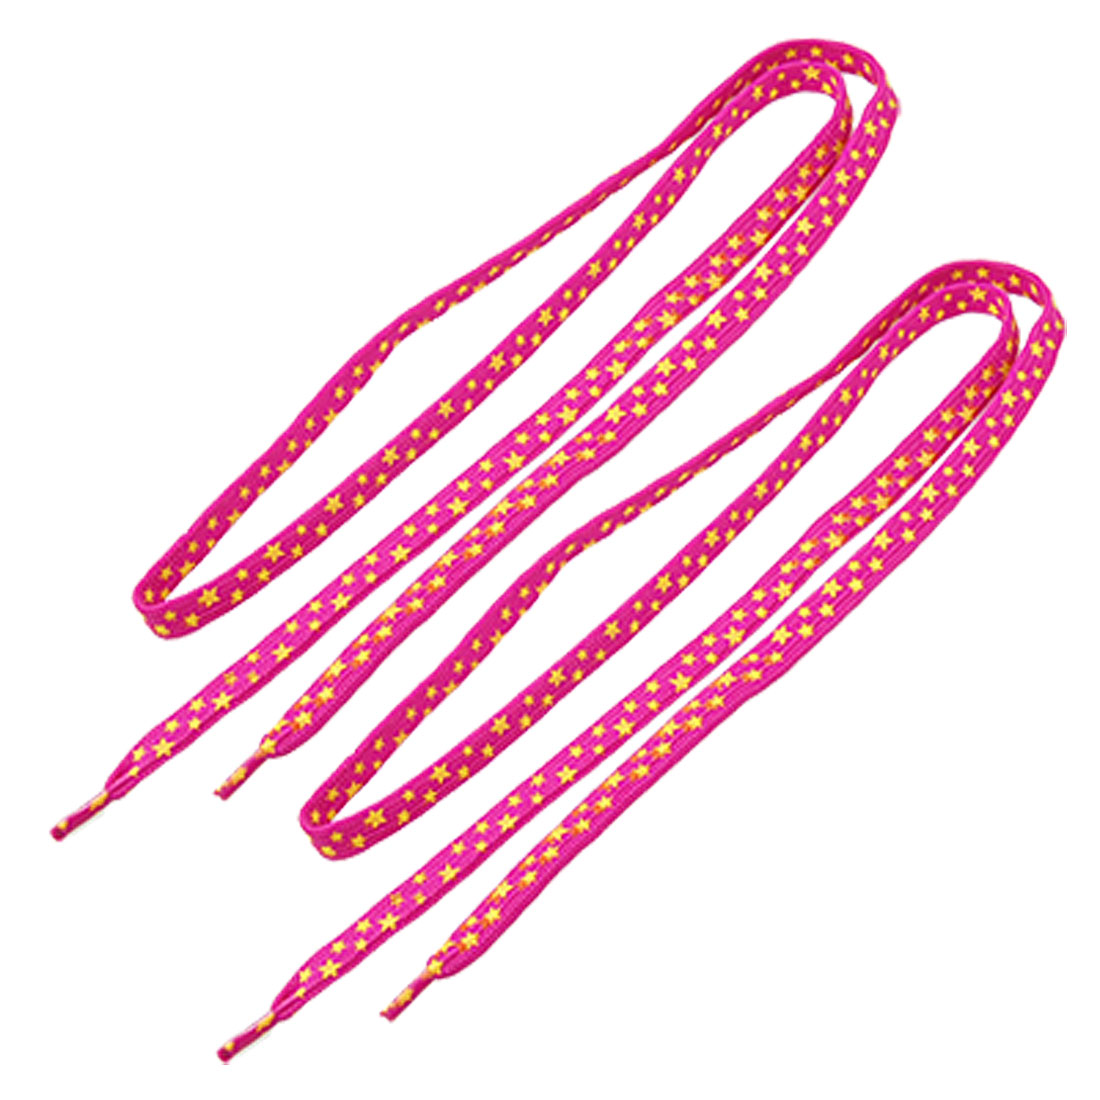 Yellow Star Print Fuchsia Flat 110cm Long Sneakers Shoelace String